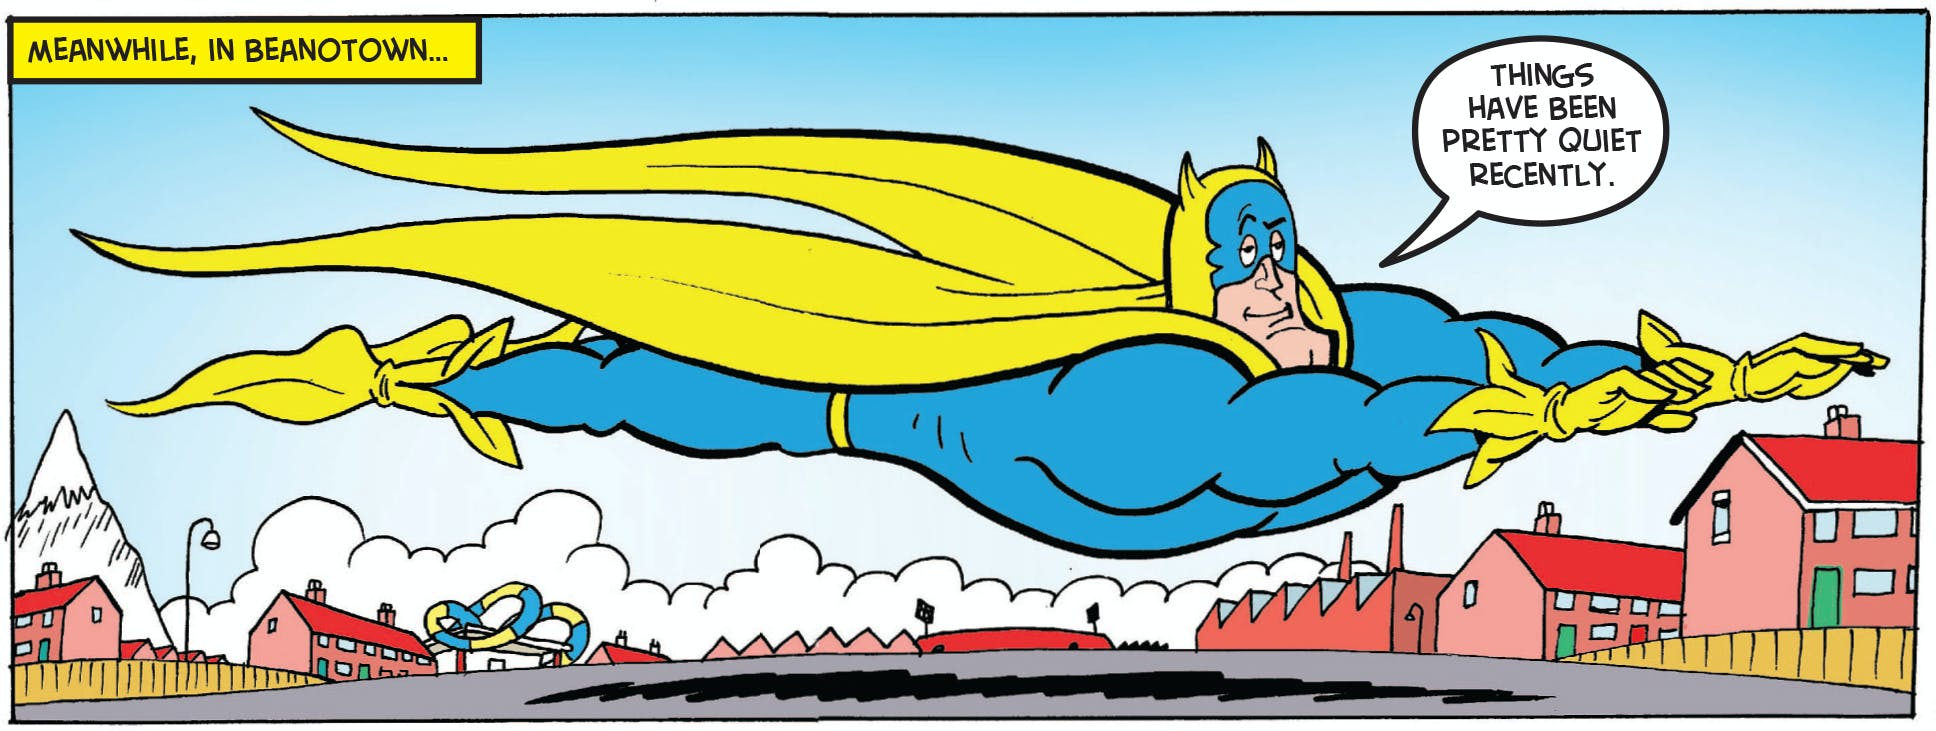 Bananaman flying